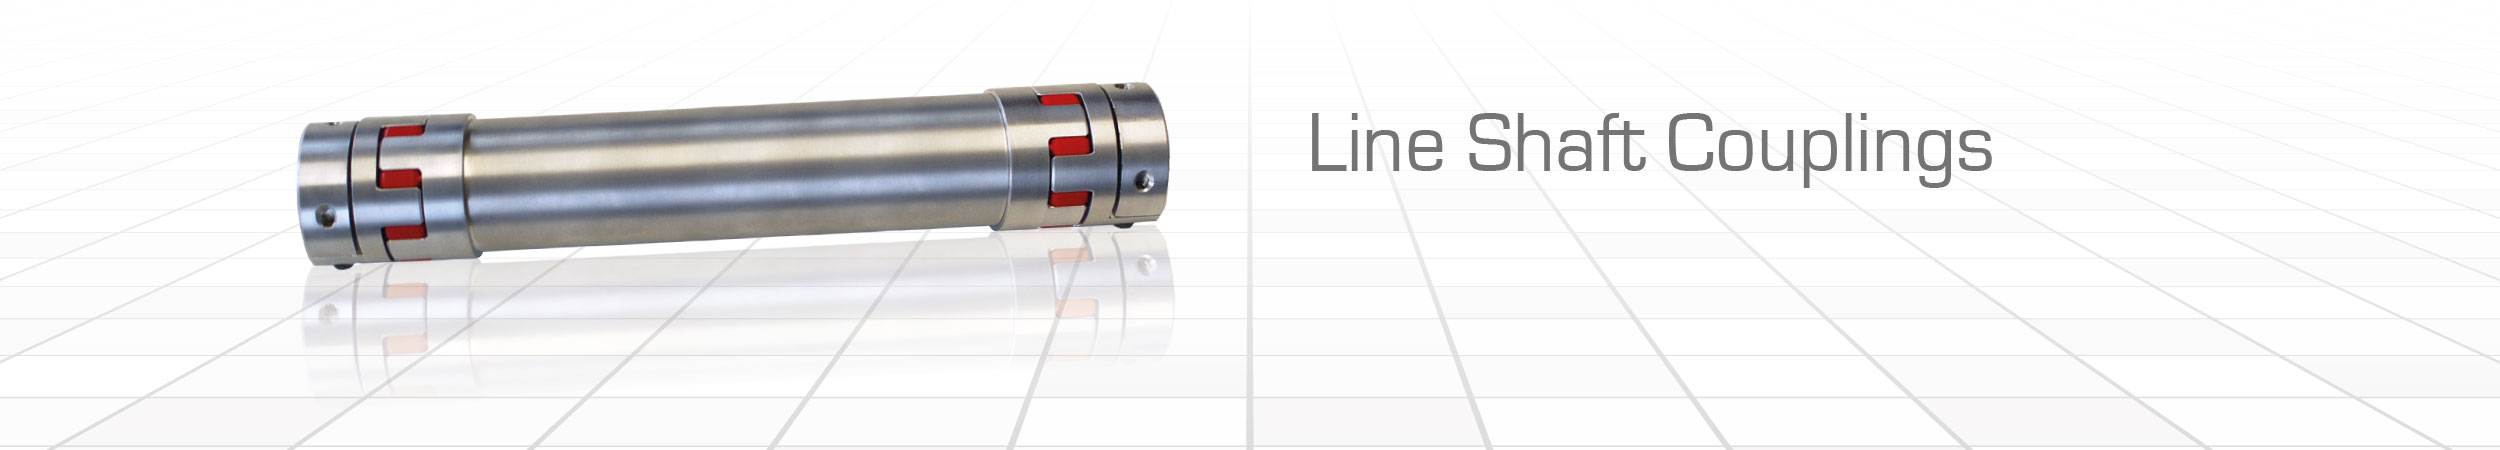 Line Shaft Couplings